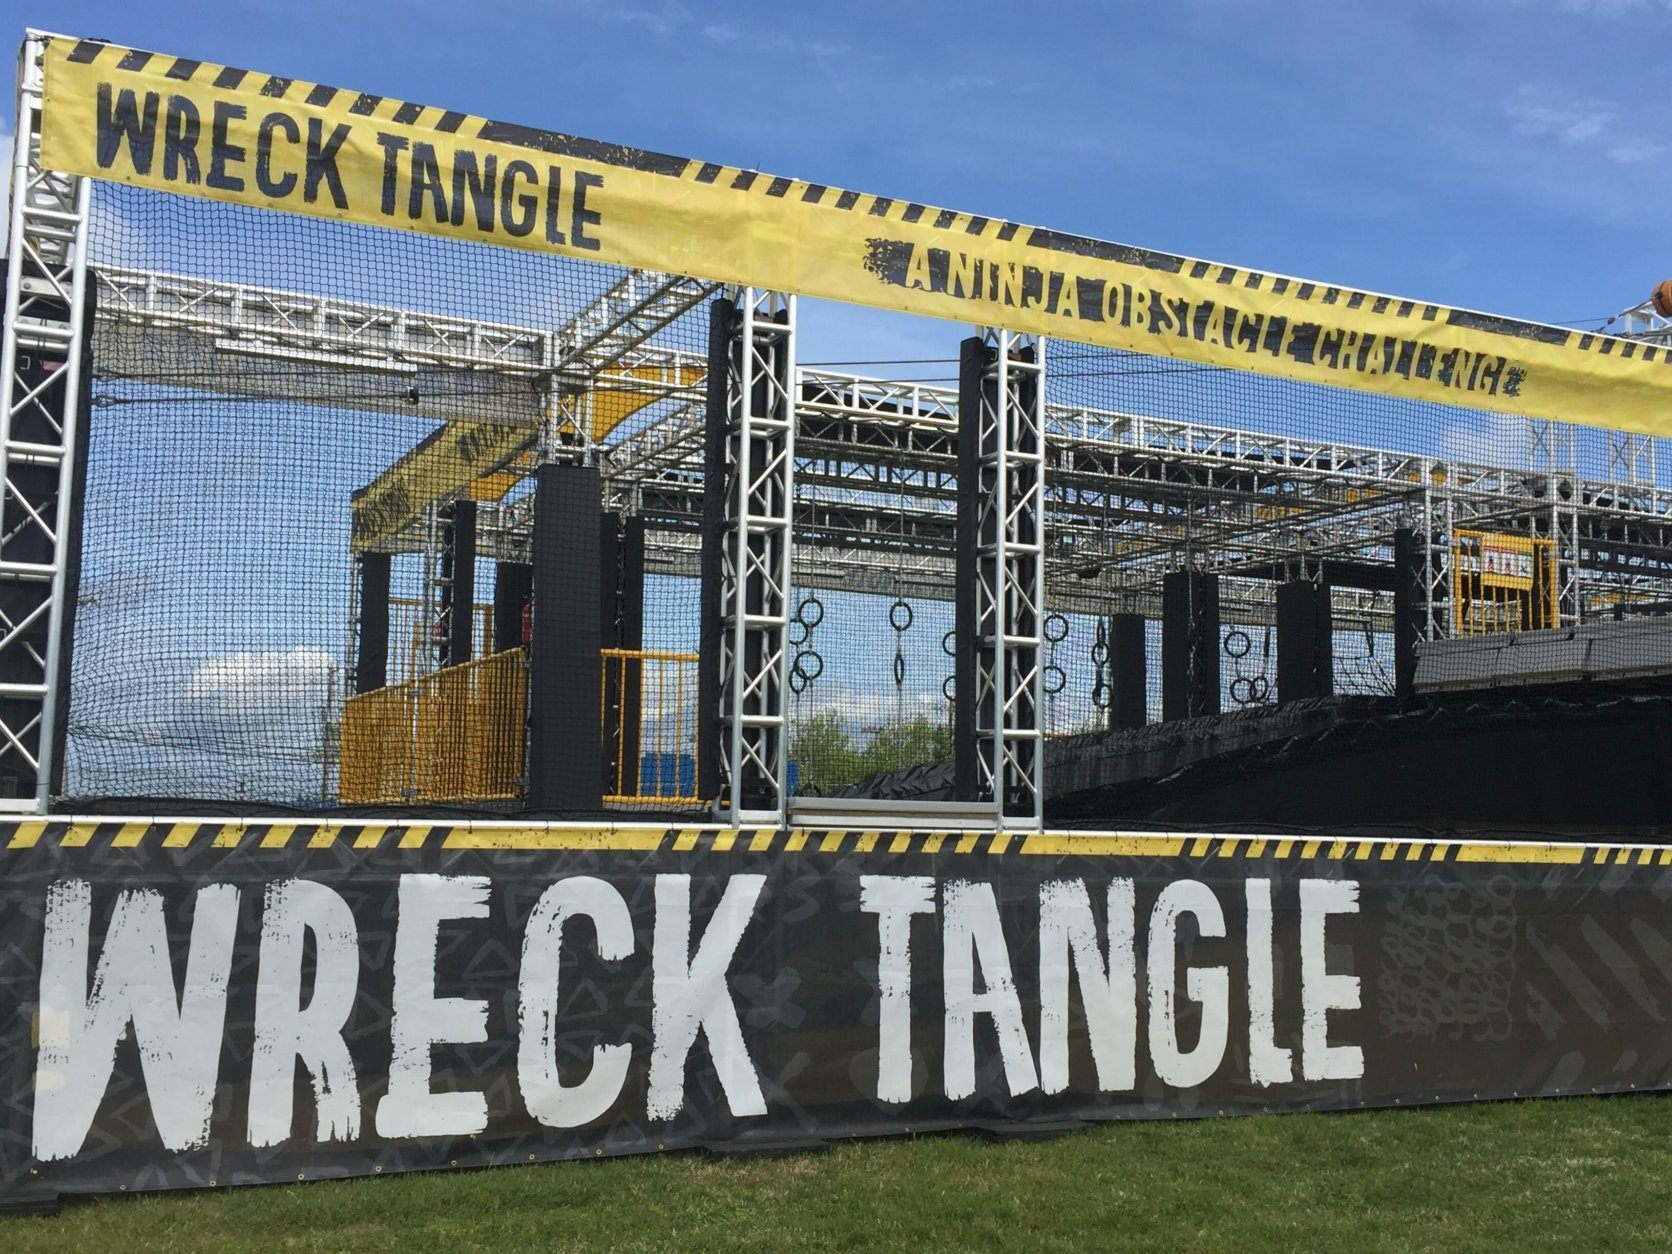 The new WreckTangle obstacle course in Ocean City. (WTOP/John Domen)